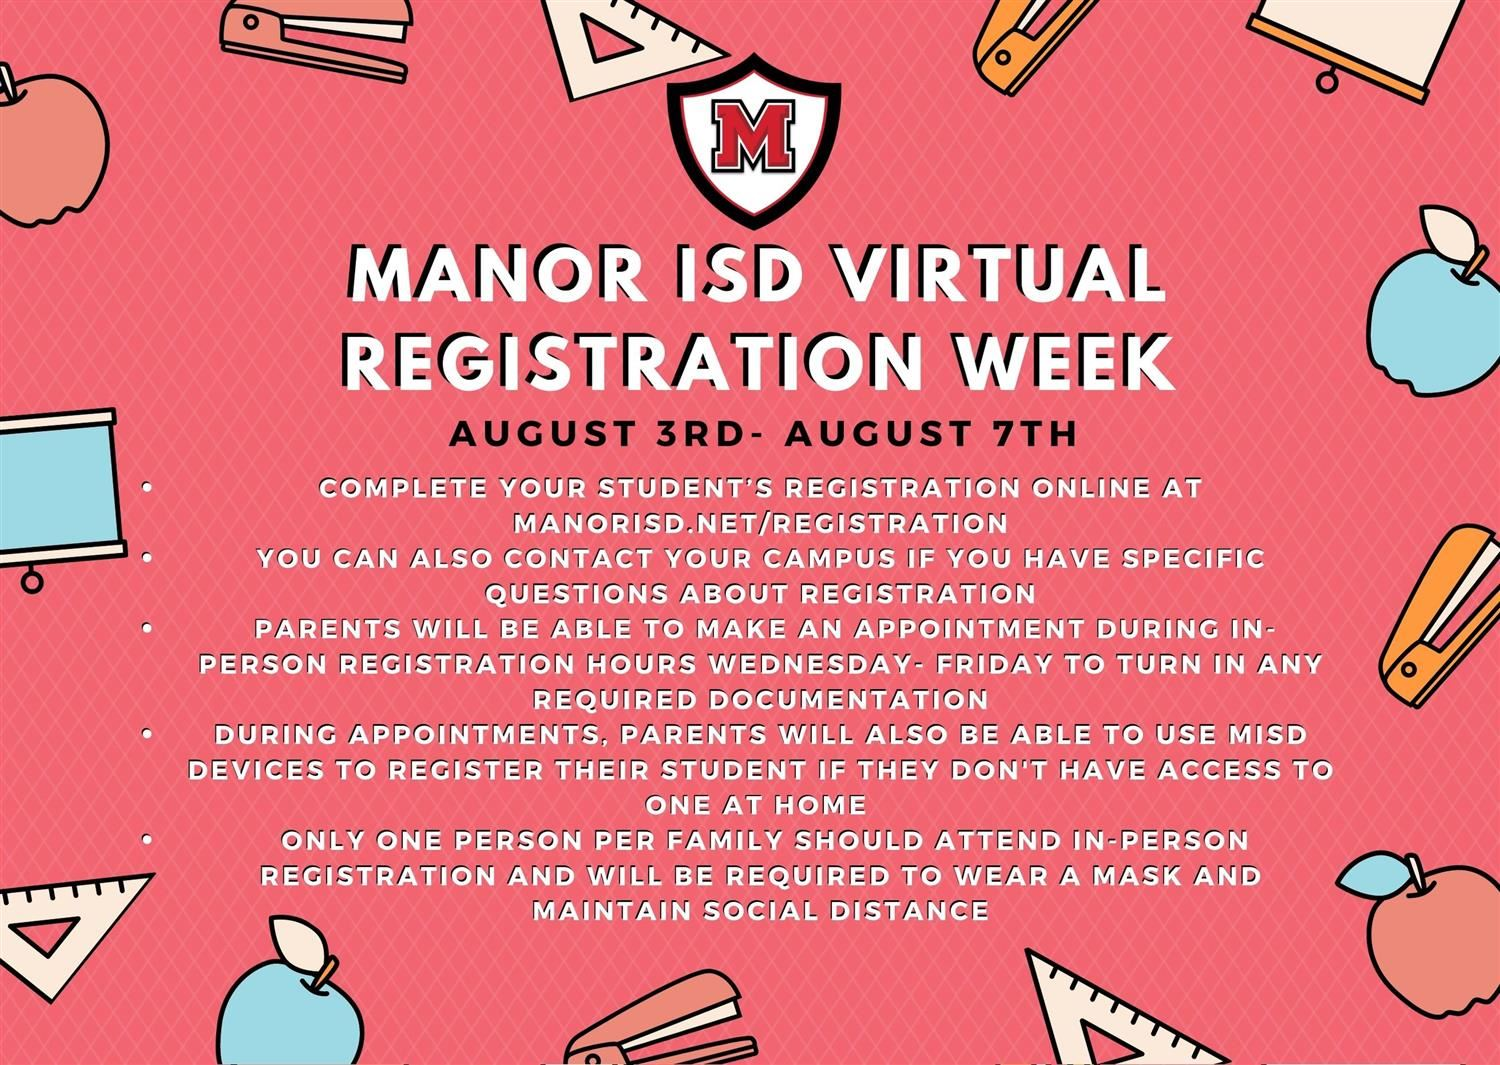 MISD to Host Virtual Registration Week August 3rd - August 7th